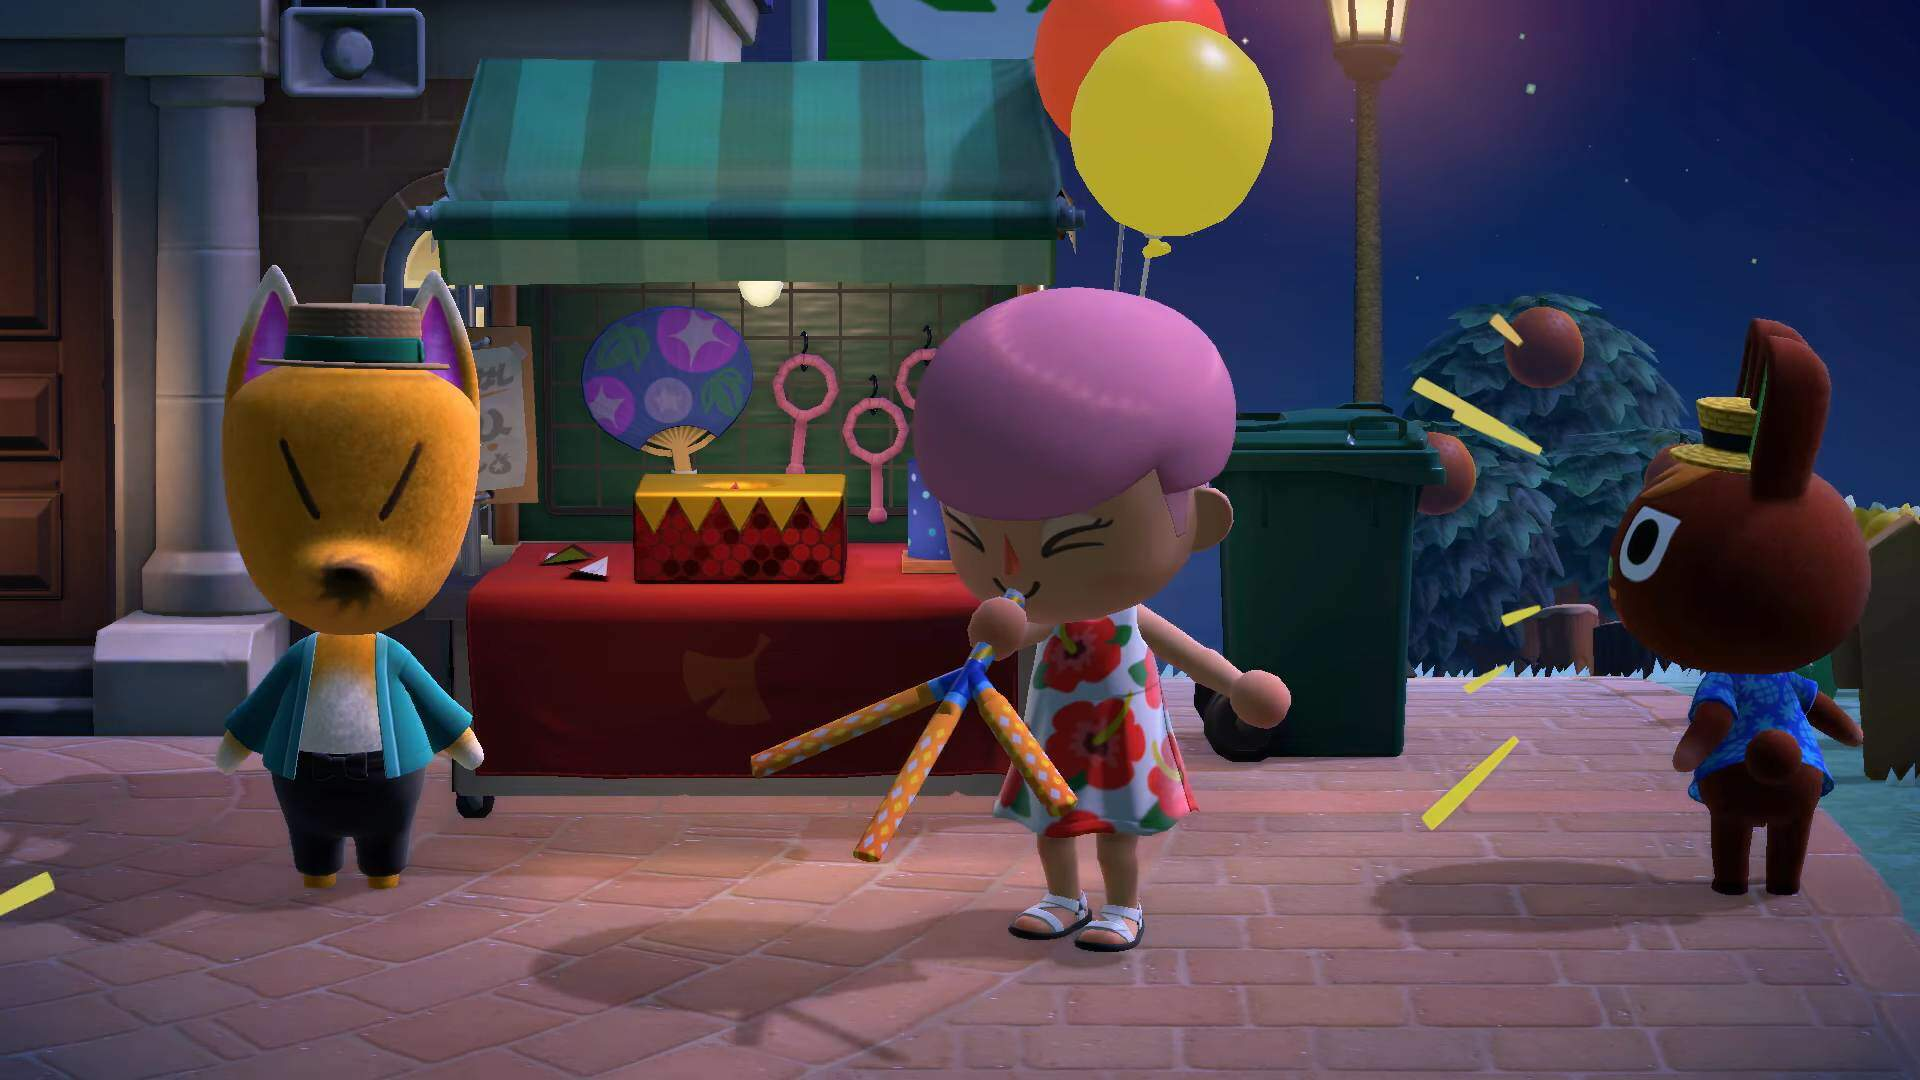 Animal Crossing: New Horizons Sells 22 Million Units, Eclipsing Smash Ultimate and Breath of the Wild